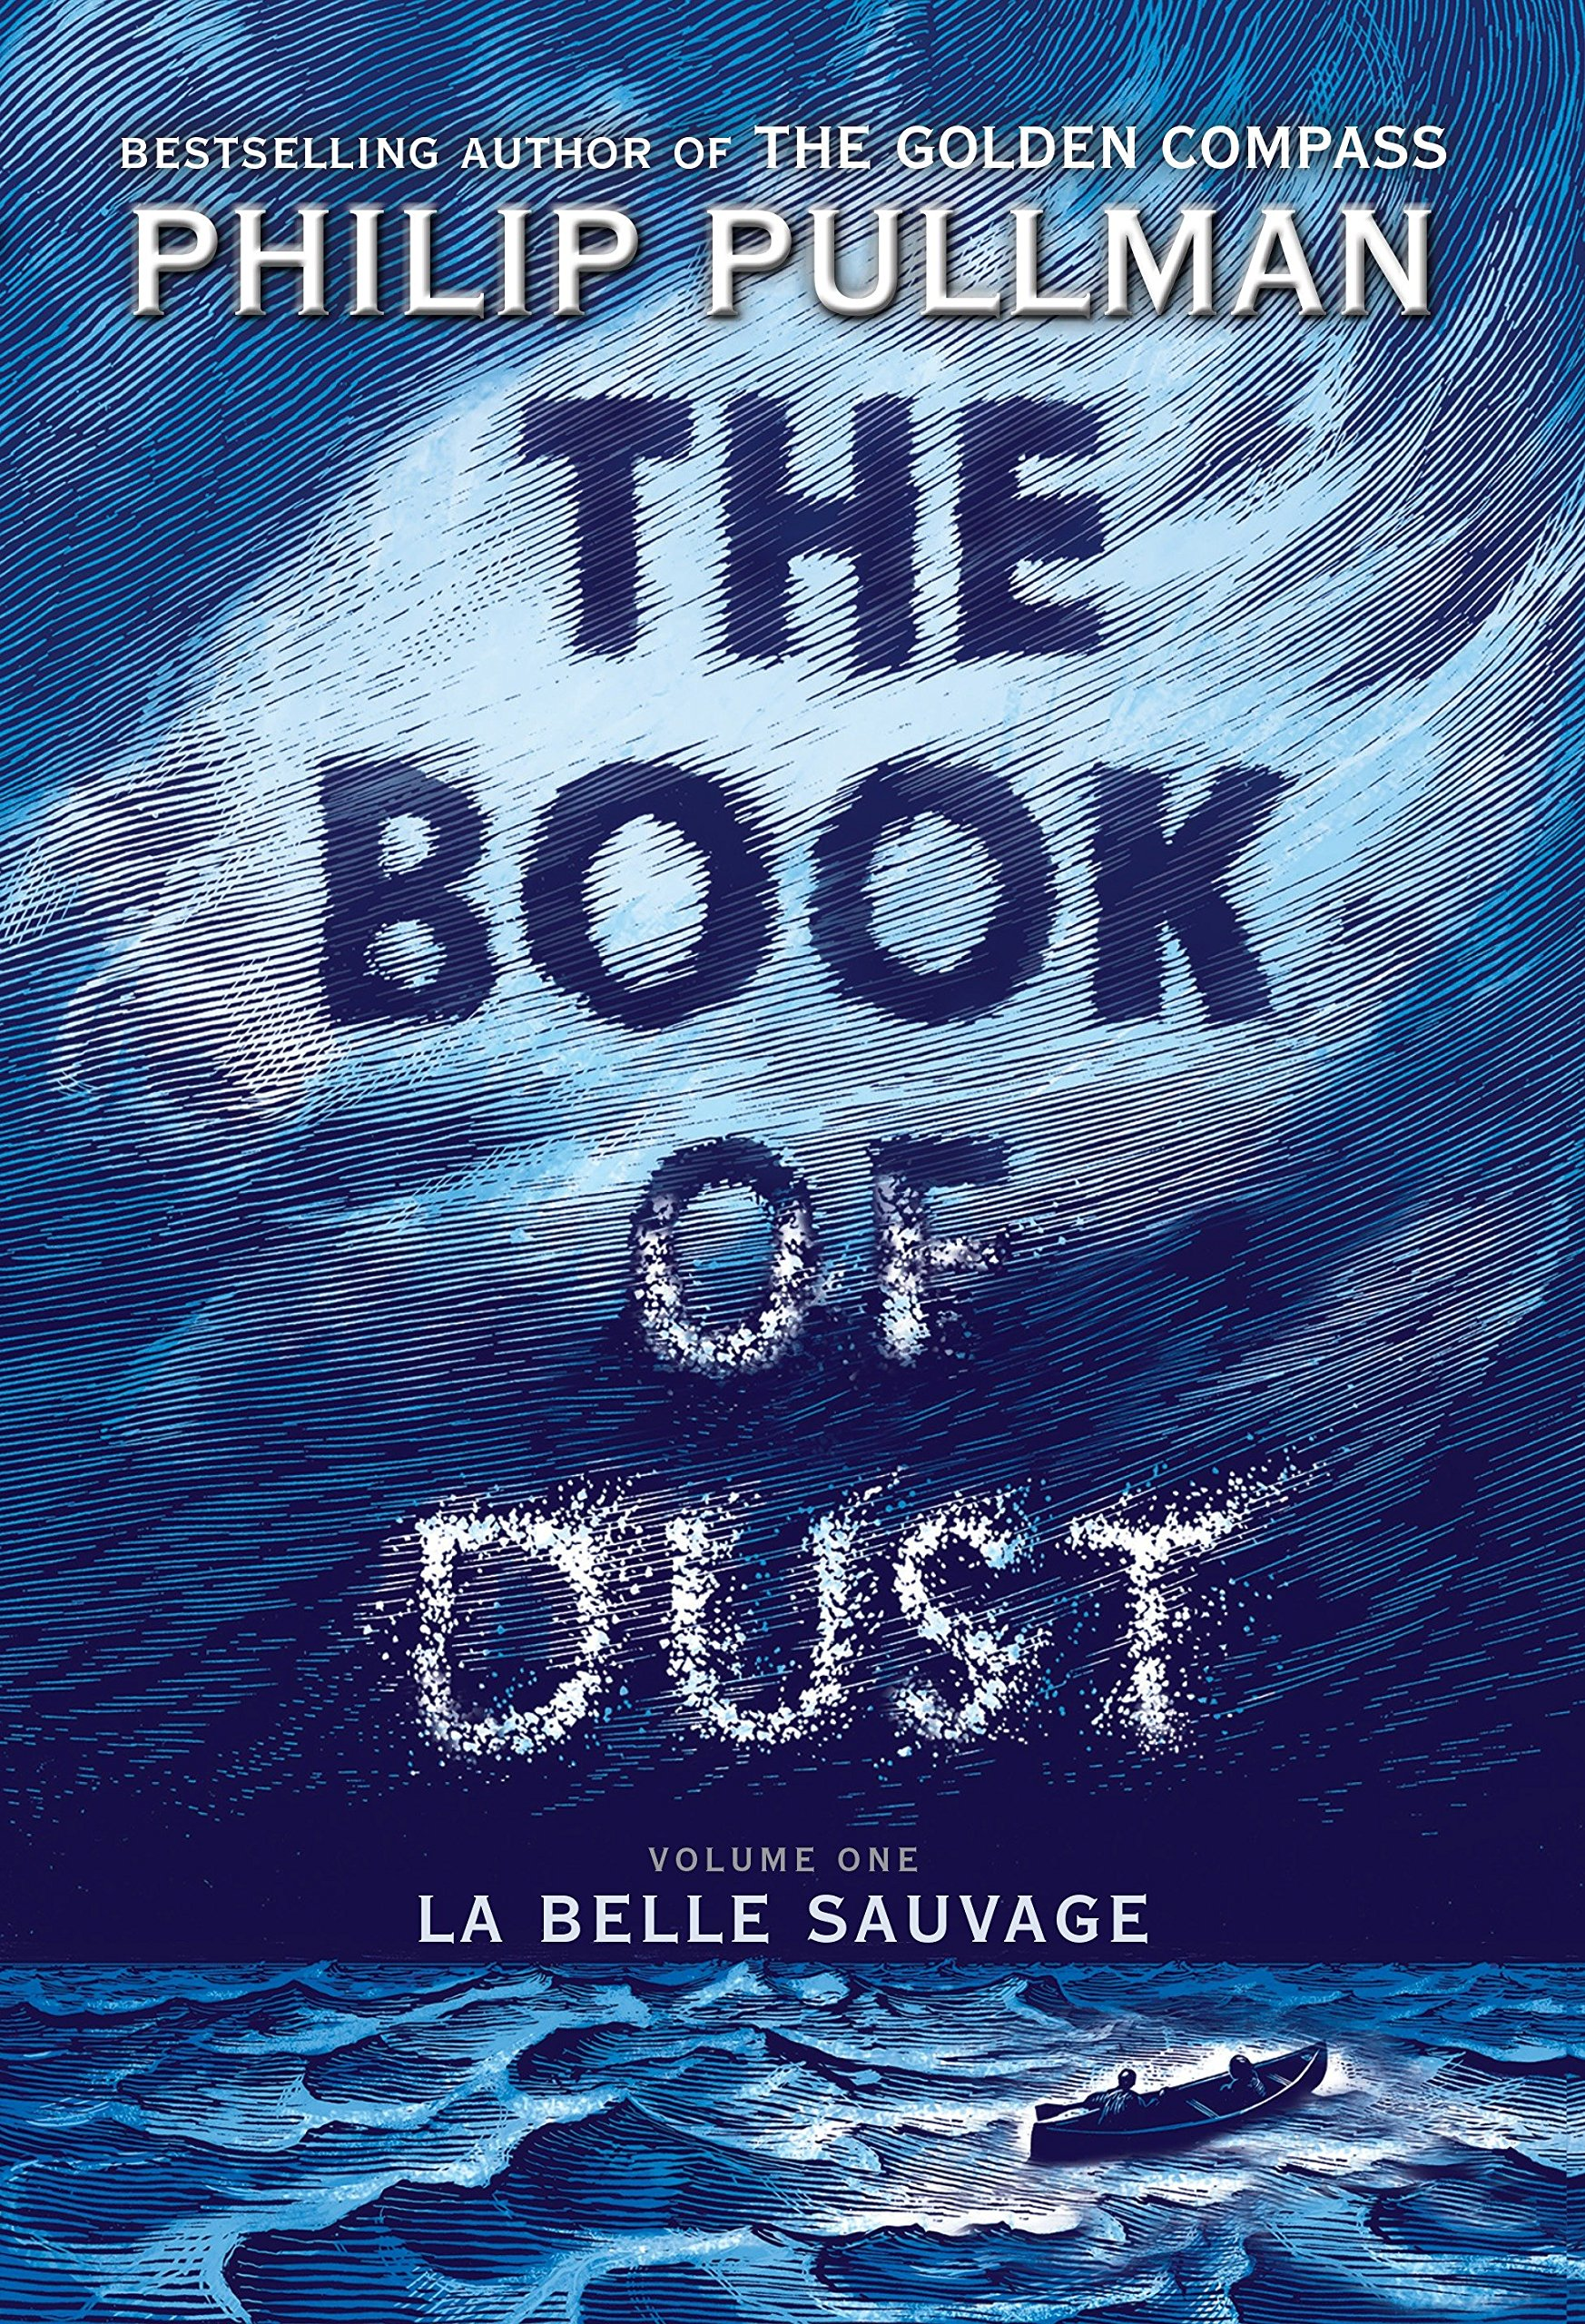 a852ef4fa254 The Book of Dust: La Belle Sauvage (Book of Dust, Volume 1) (Inglês) Capa  dura – Páginas com borda irregular, 19 out 2017